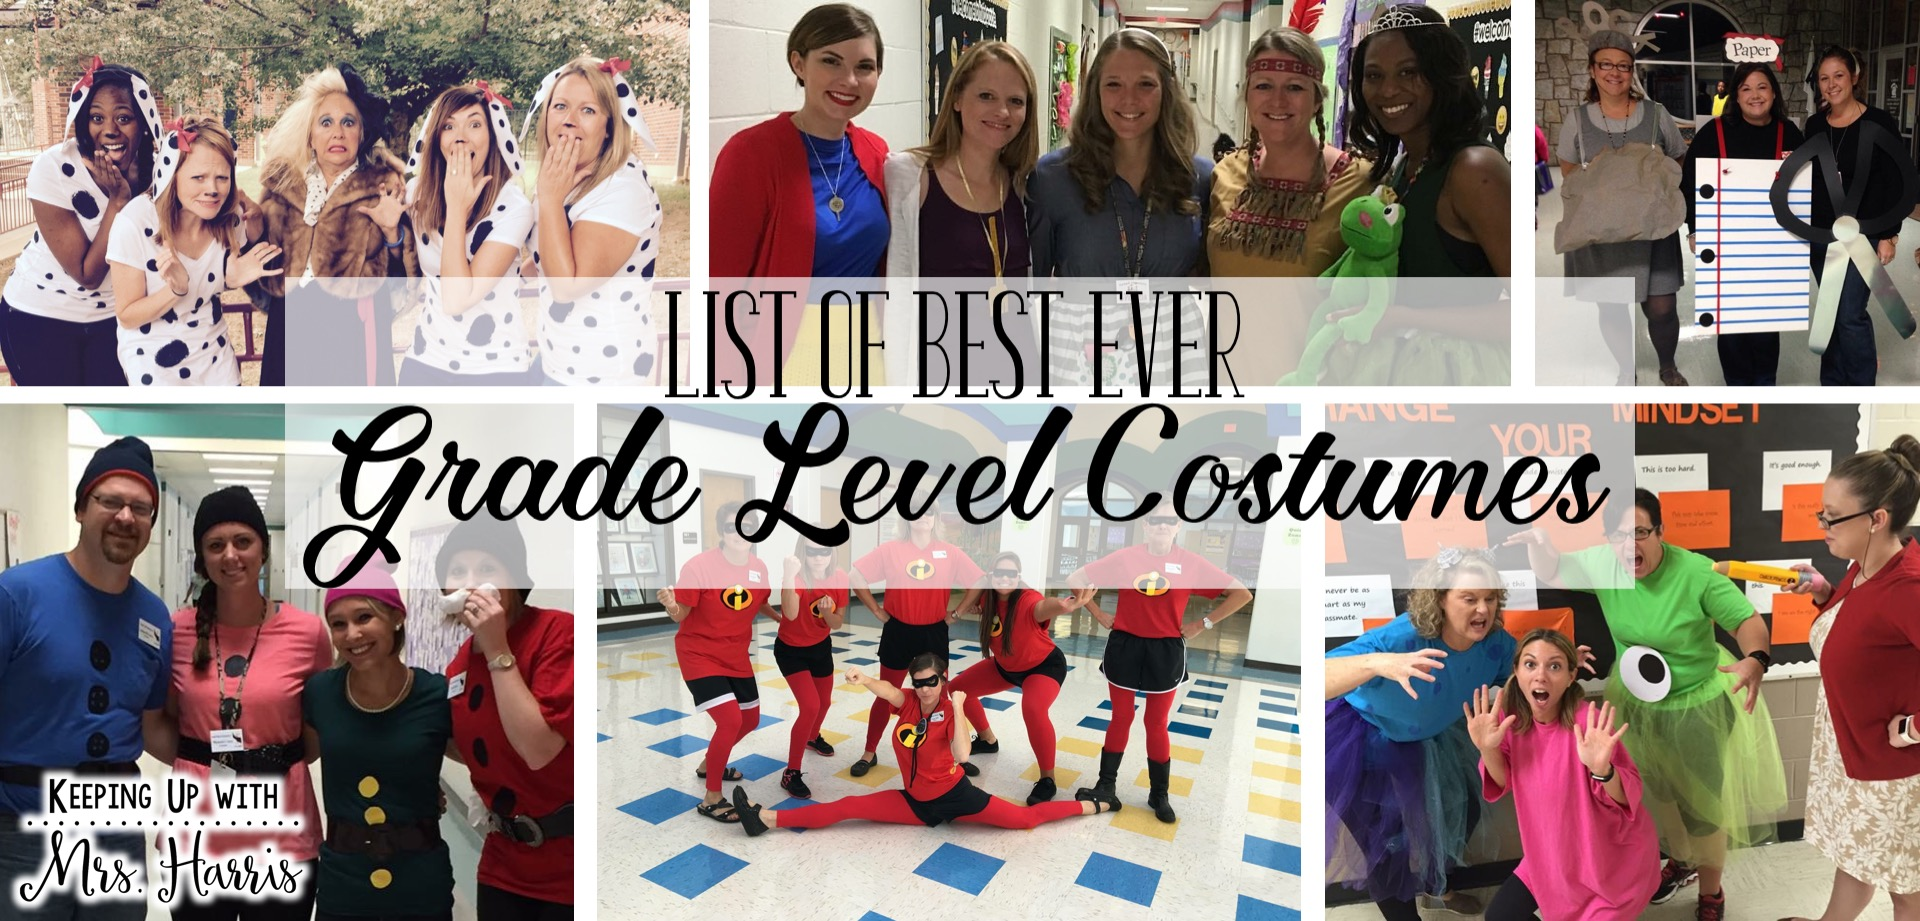 the best ever grade level costumes for teachers the